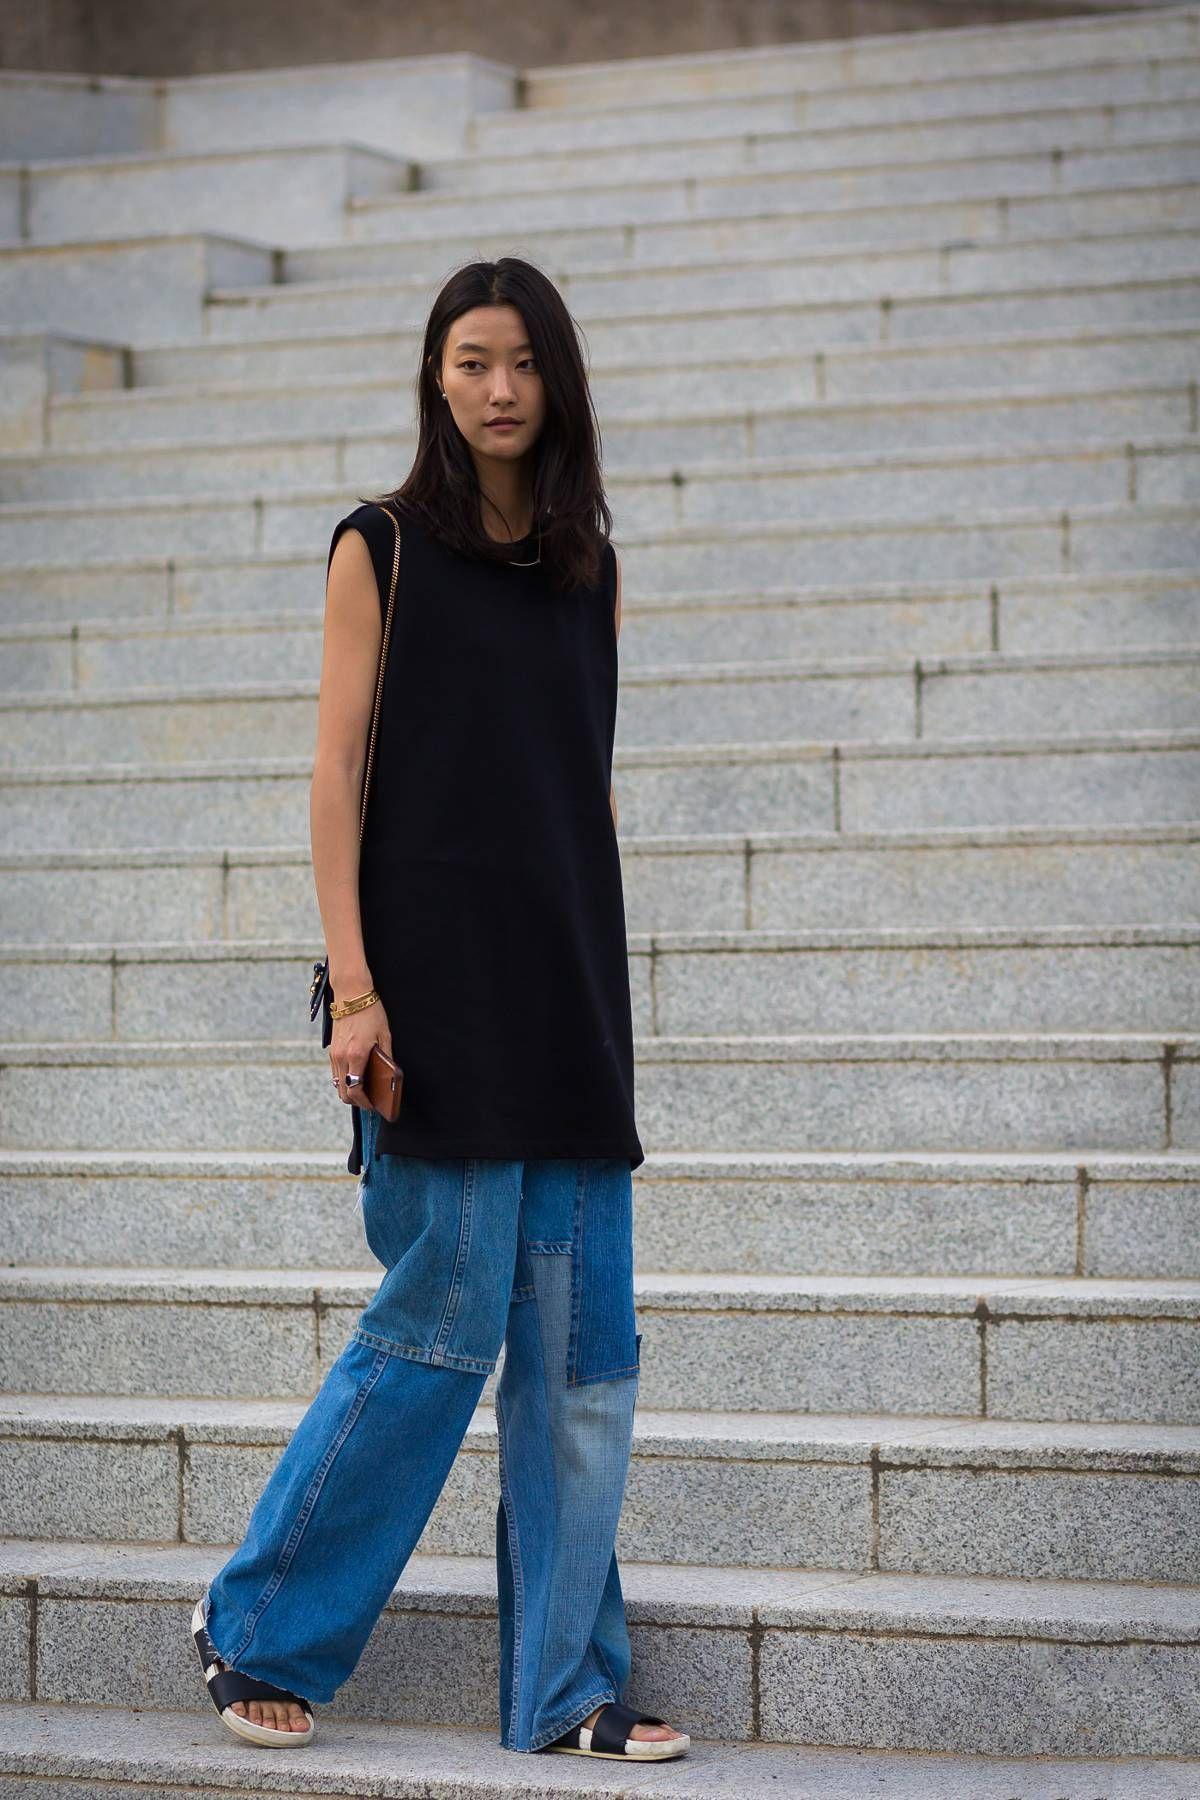 Pin on Everyday chic